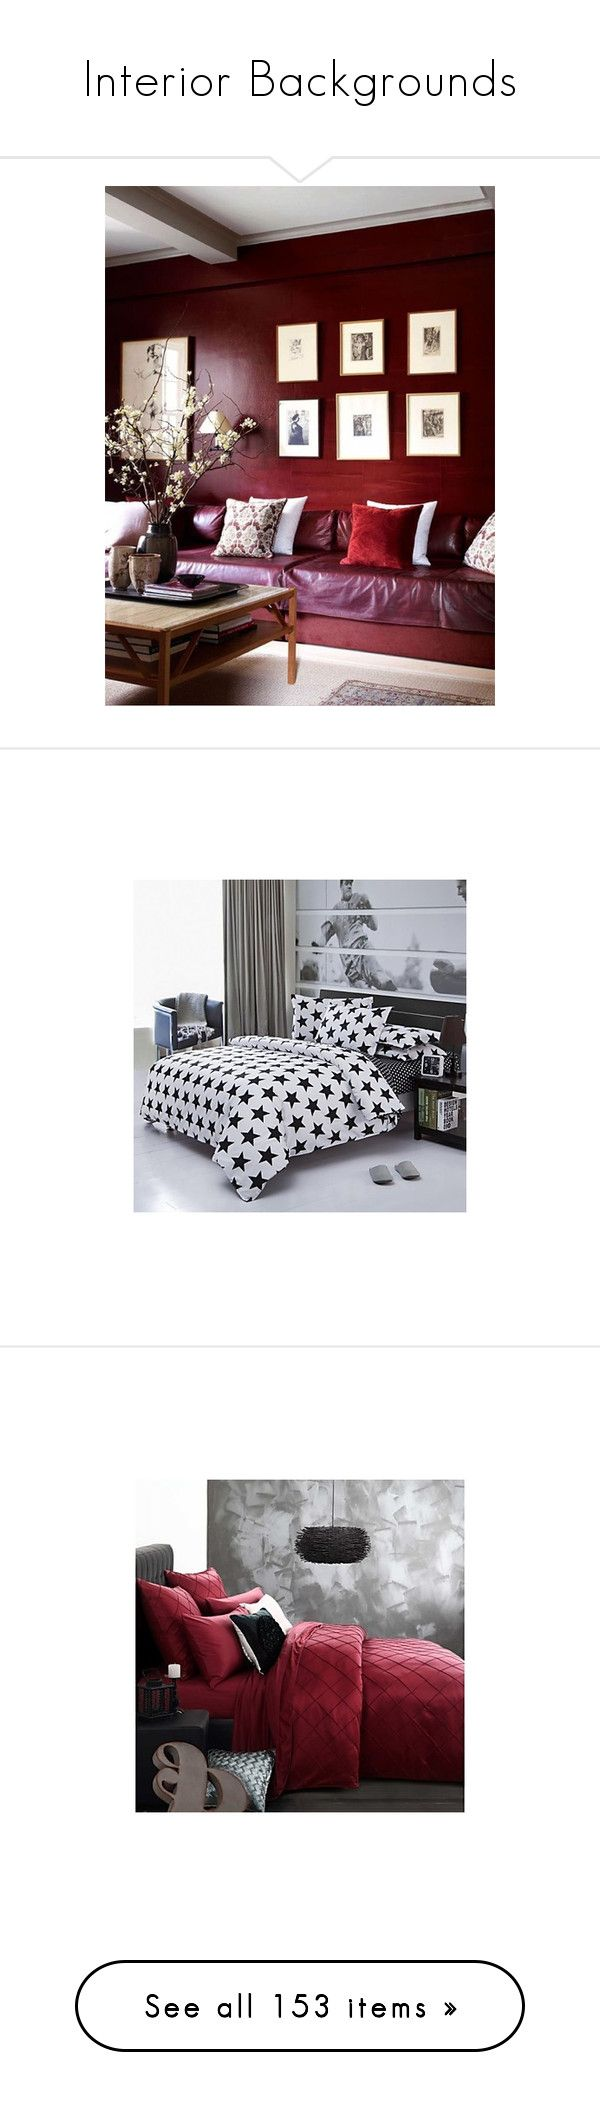 """Interior Backgrounds"" by noconfessions ❤ liked on Polyvore featuring home, bed & bath, bedding, contemporary, duvet covers, black and white twin bedding, black and white king size bedding, king bedding, queen bedding and king size bedding sets"